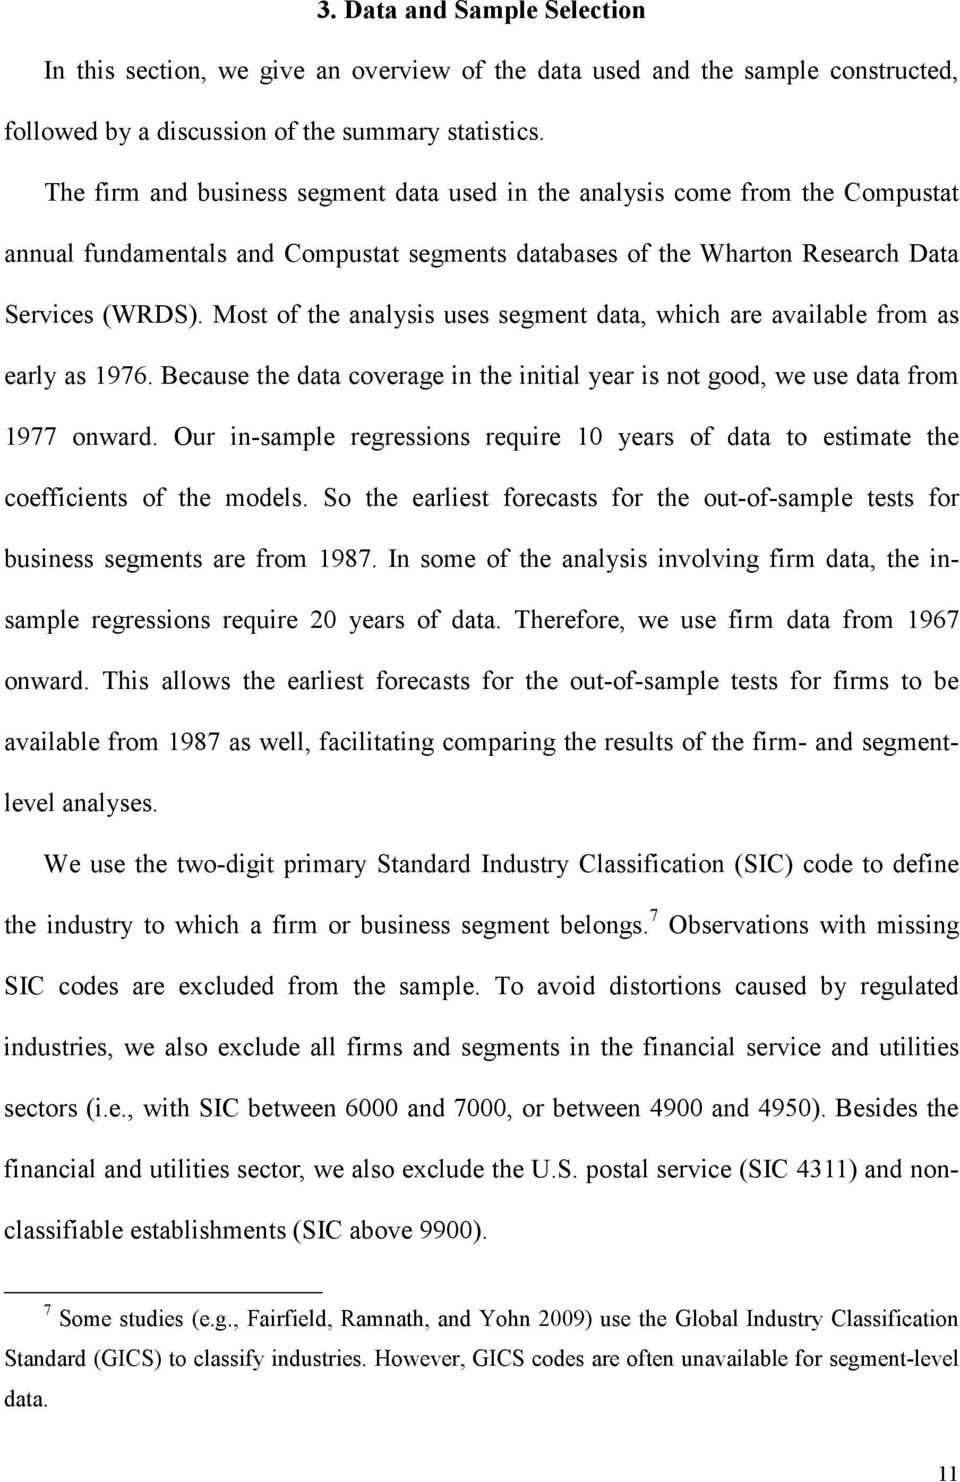 Most of the analysis uses segment data, which are available from as early as 1976. Because the data coverage in the initial year is not good, we use data from 1977 onward.